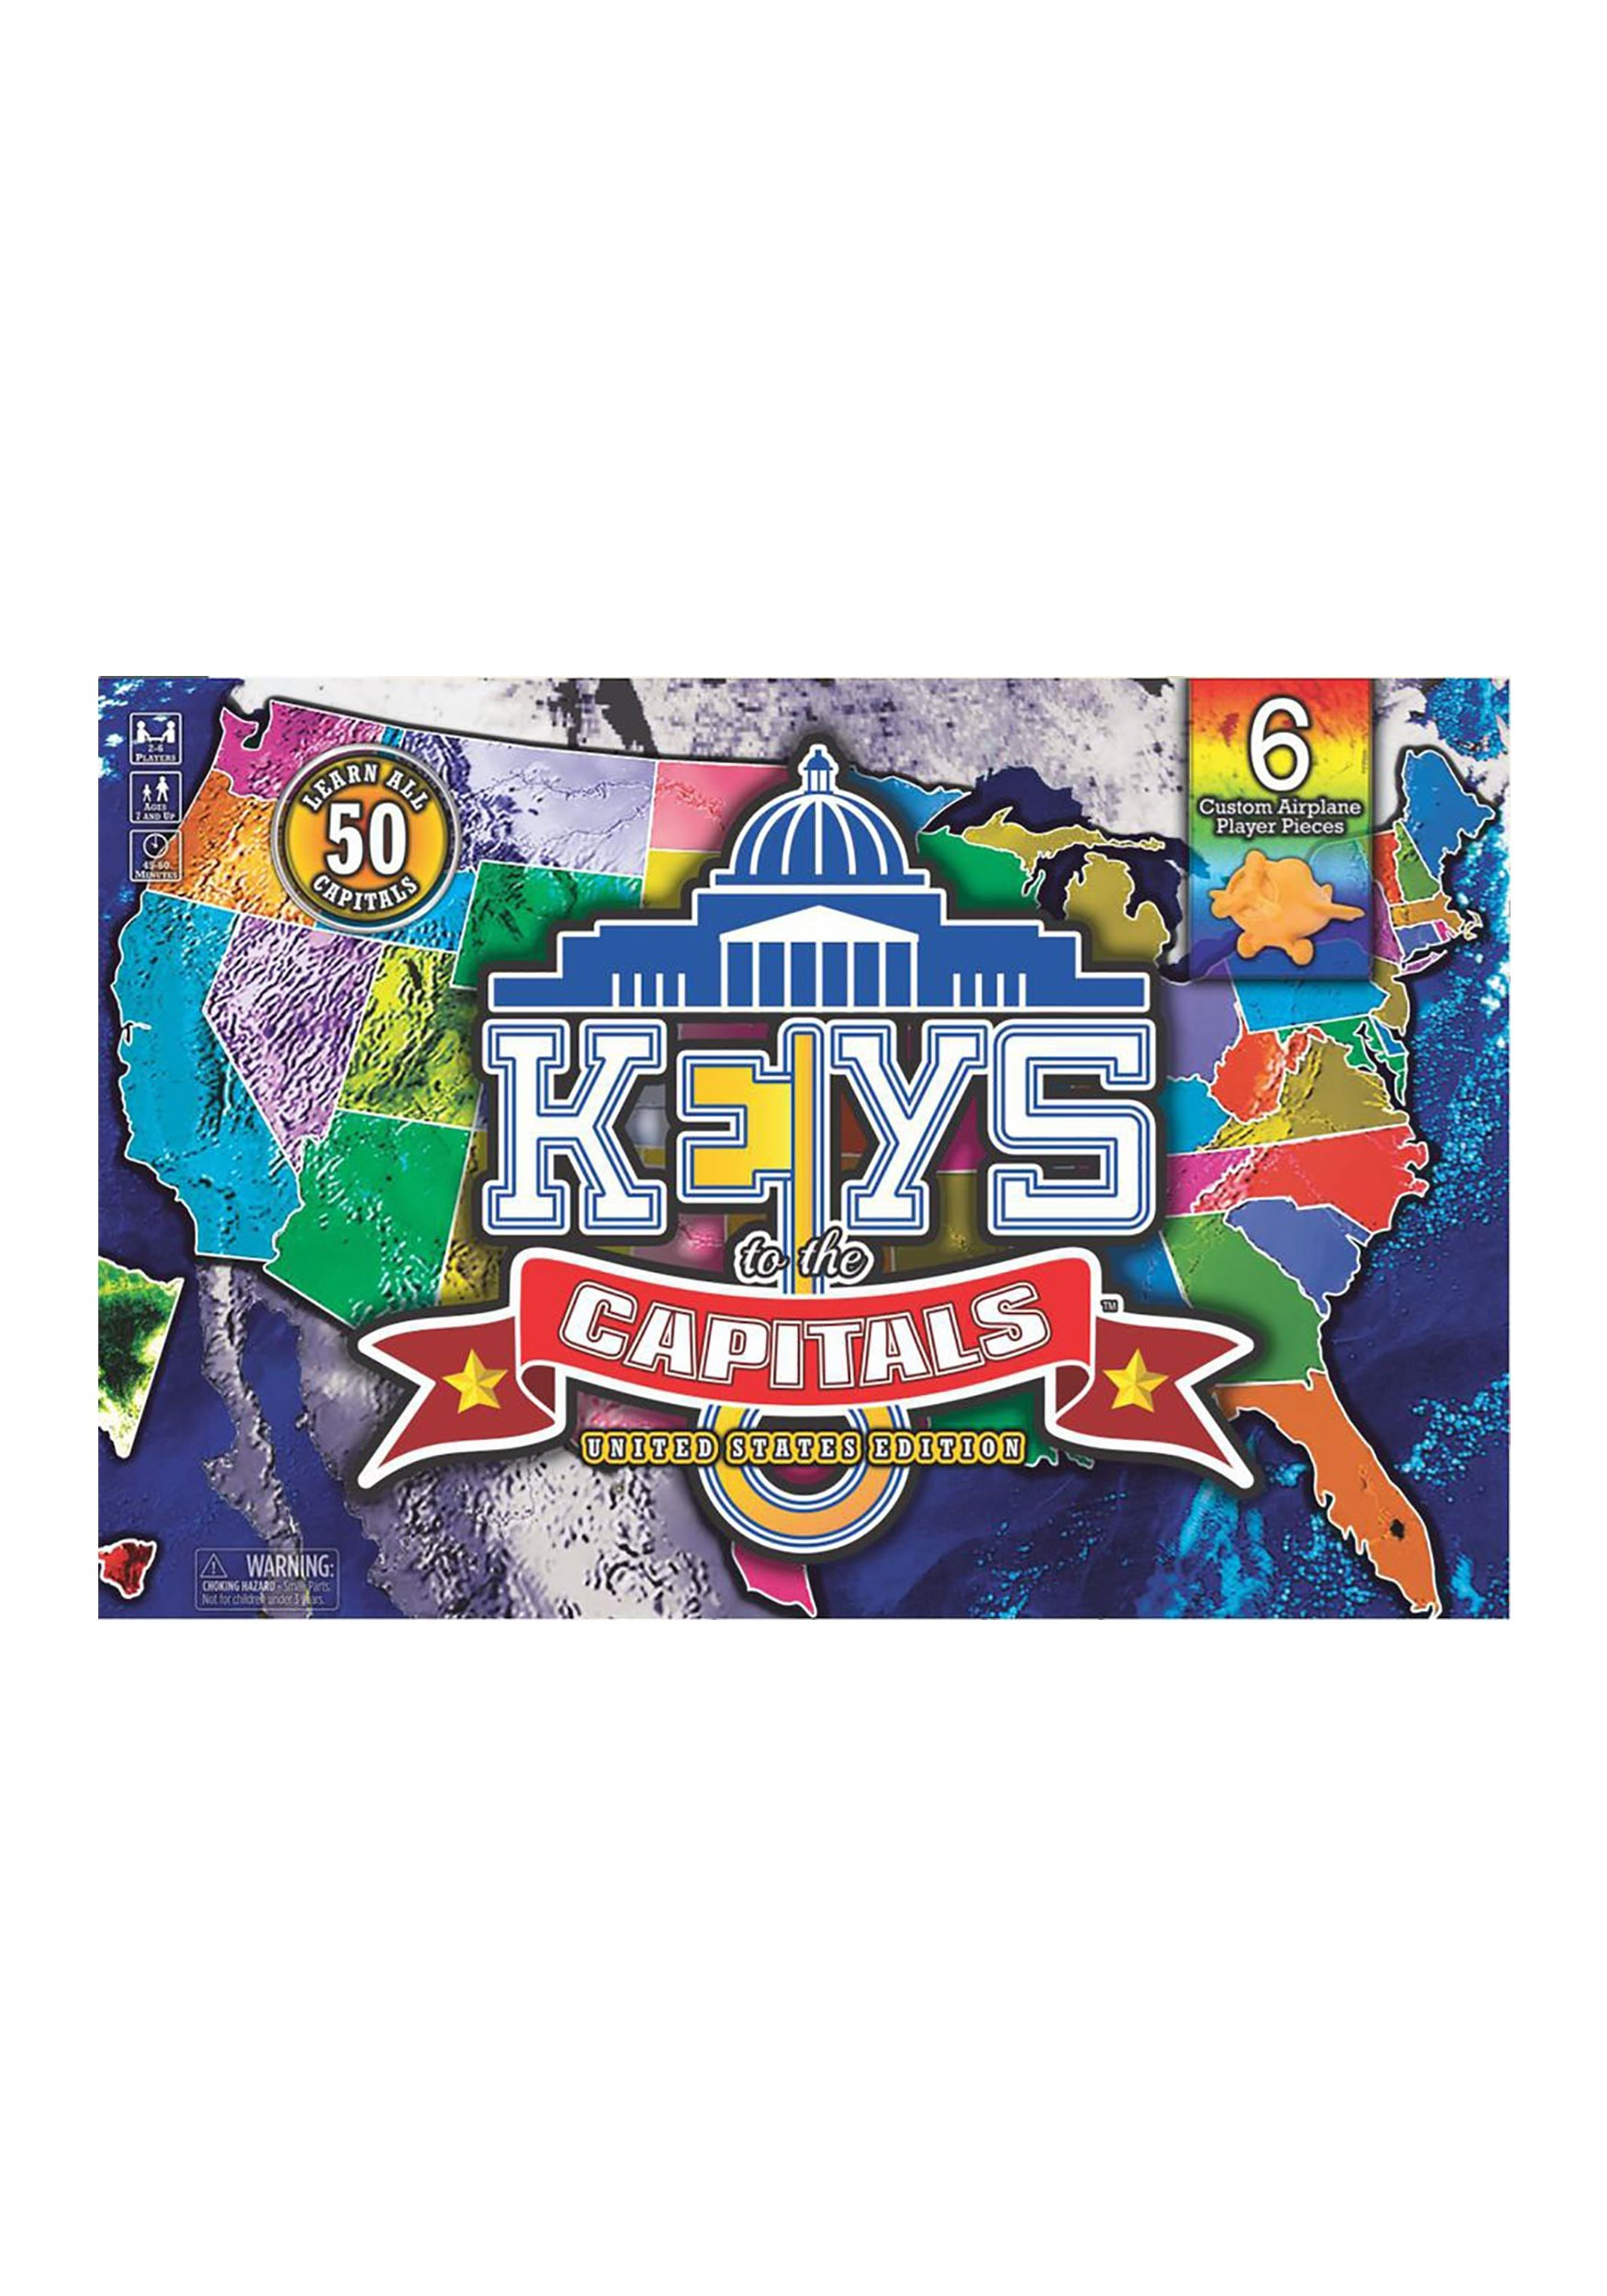 Keys to the Capitals Bell Studios Board Game